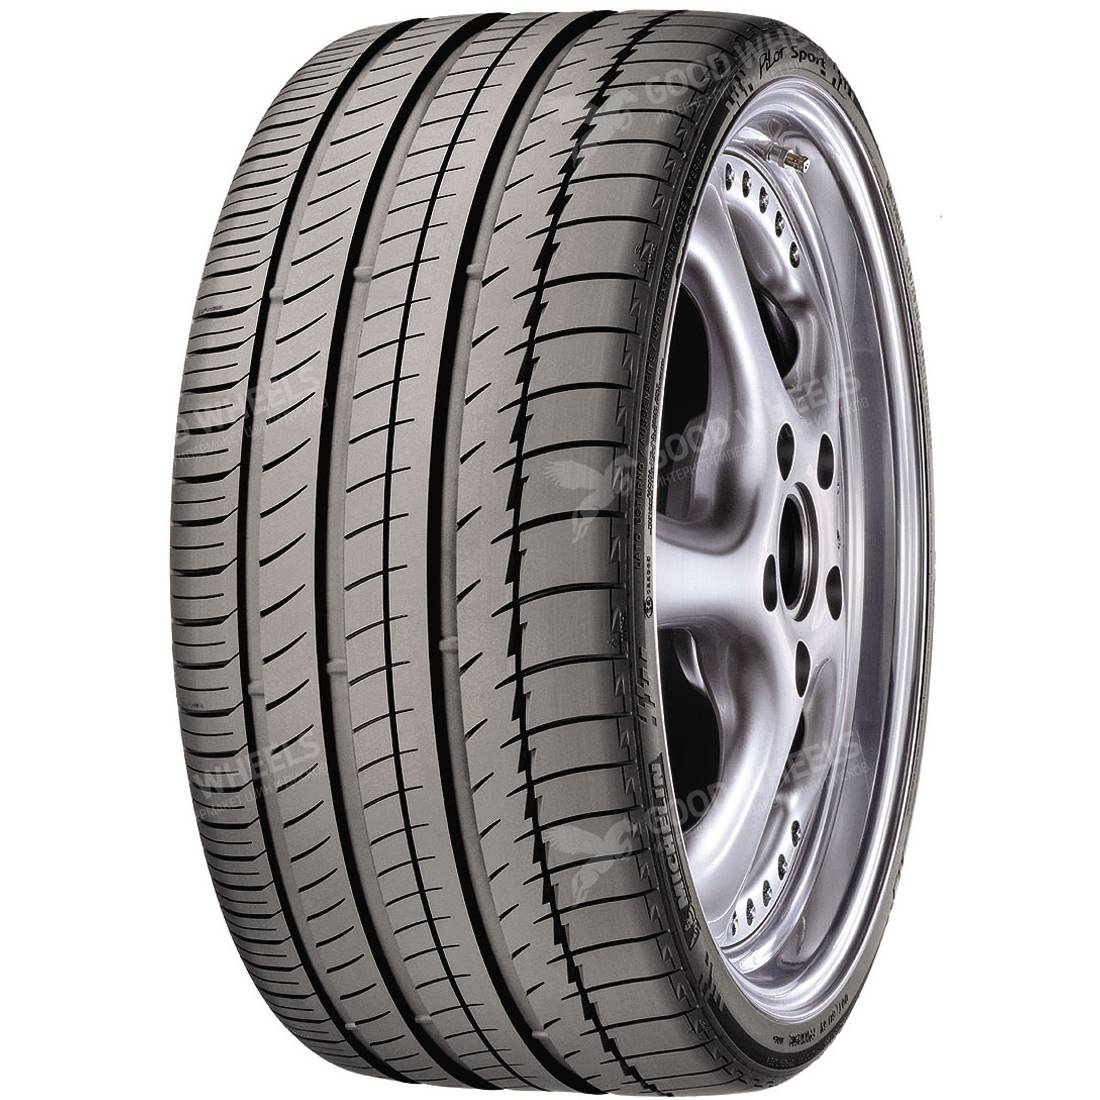 Michelin Pilot Sport 2 (PS2) 255/30 R22 95Y